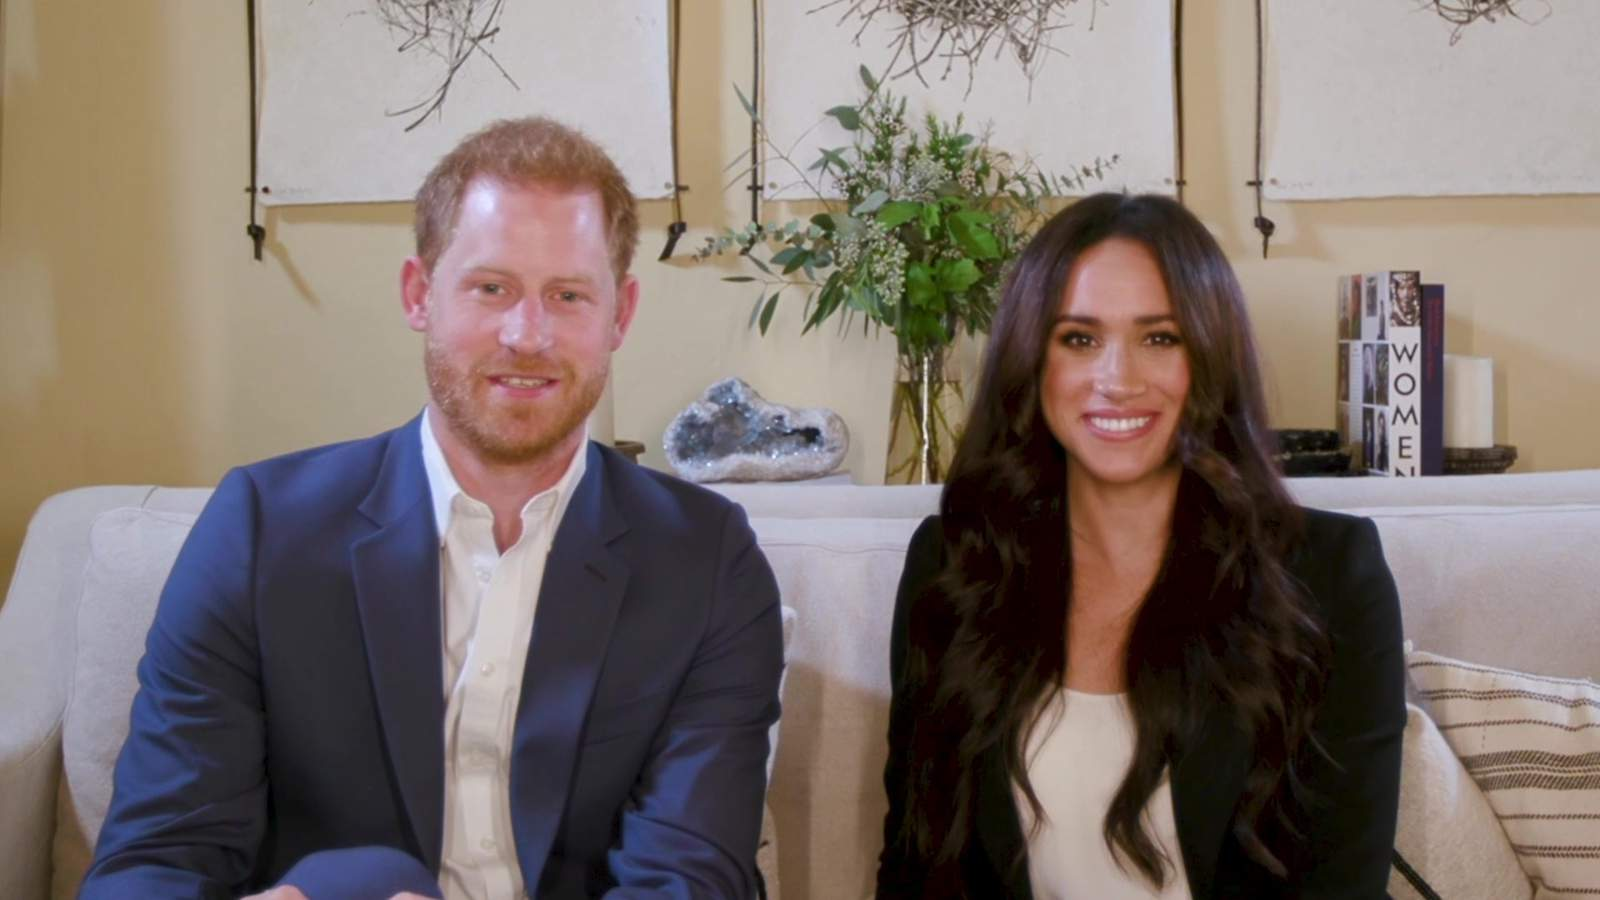 duke and duchess of sussex convene session on digital world duke and duchess of sussex convene